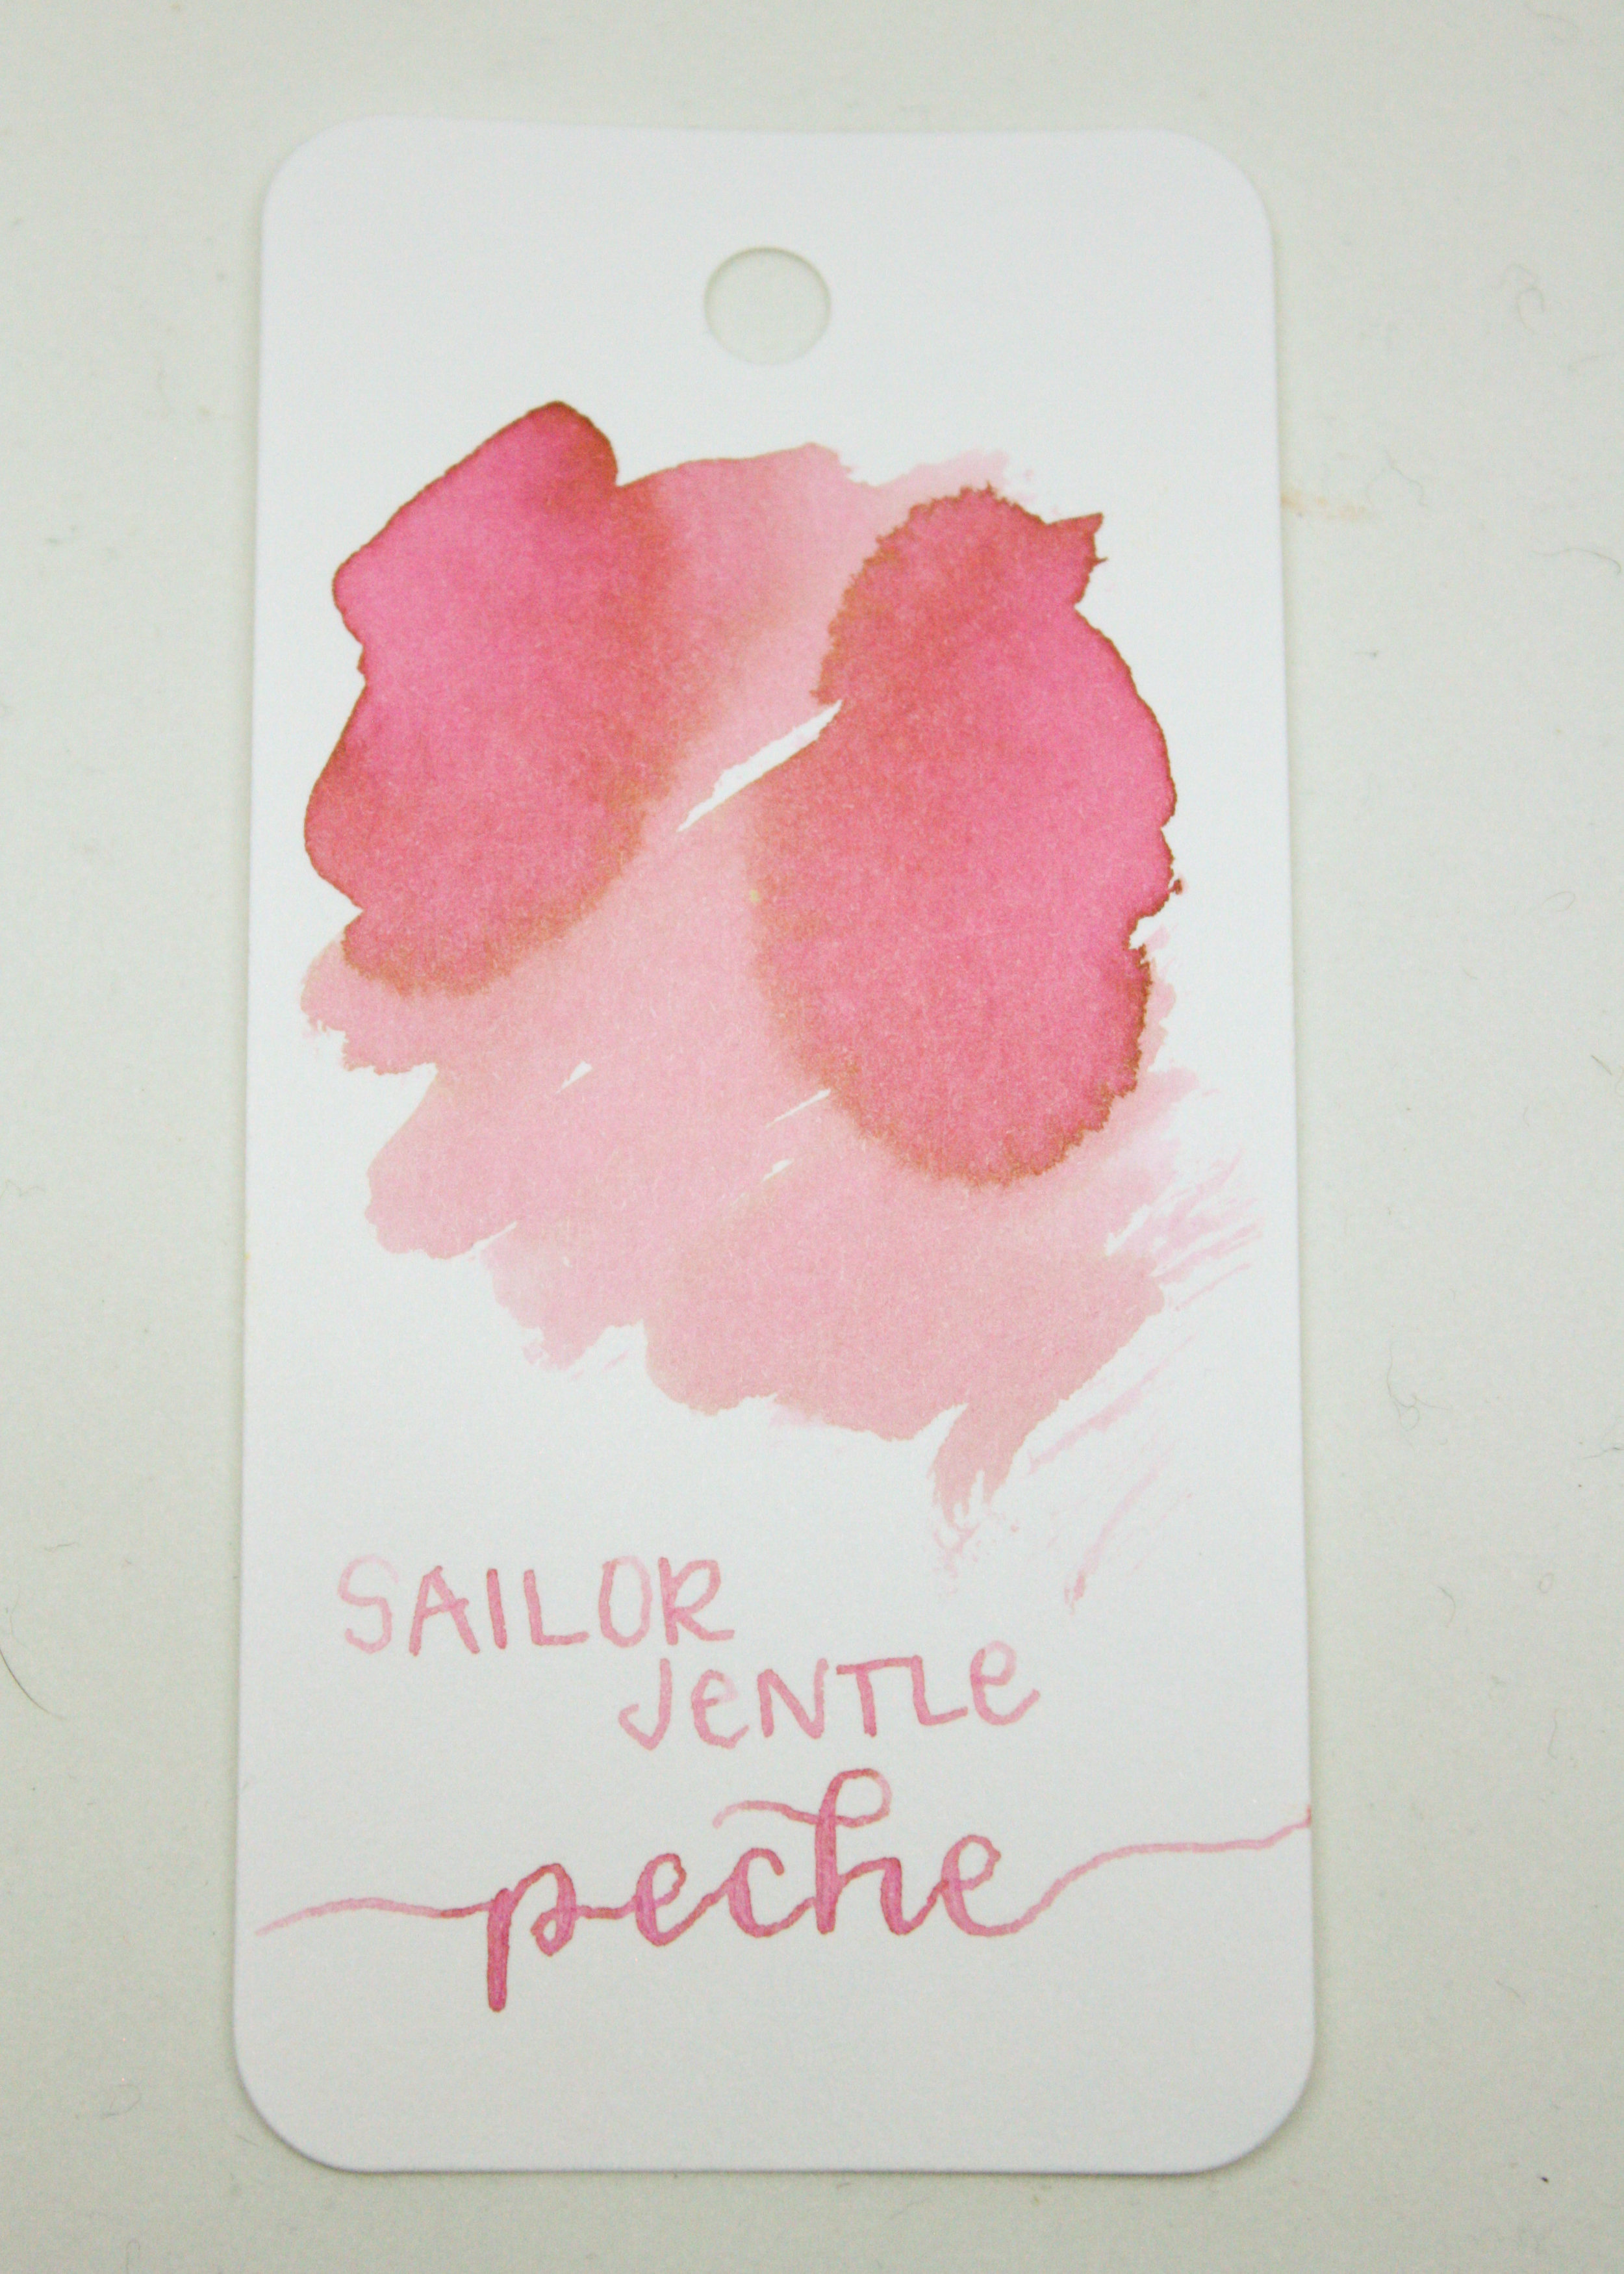 The color... - This ink is a very light pink, almost baby pink. When you pool the ink and let it dry, it almost looks gold around the edges. Seasonally, I think this would be a spring ink.